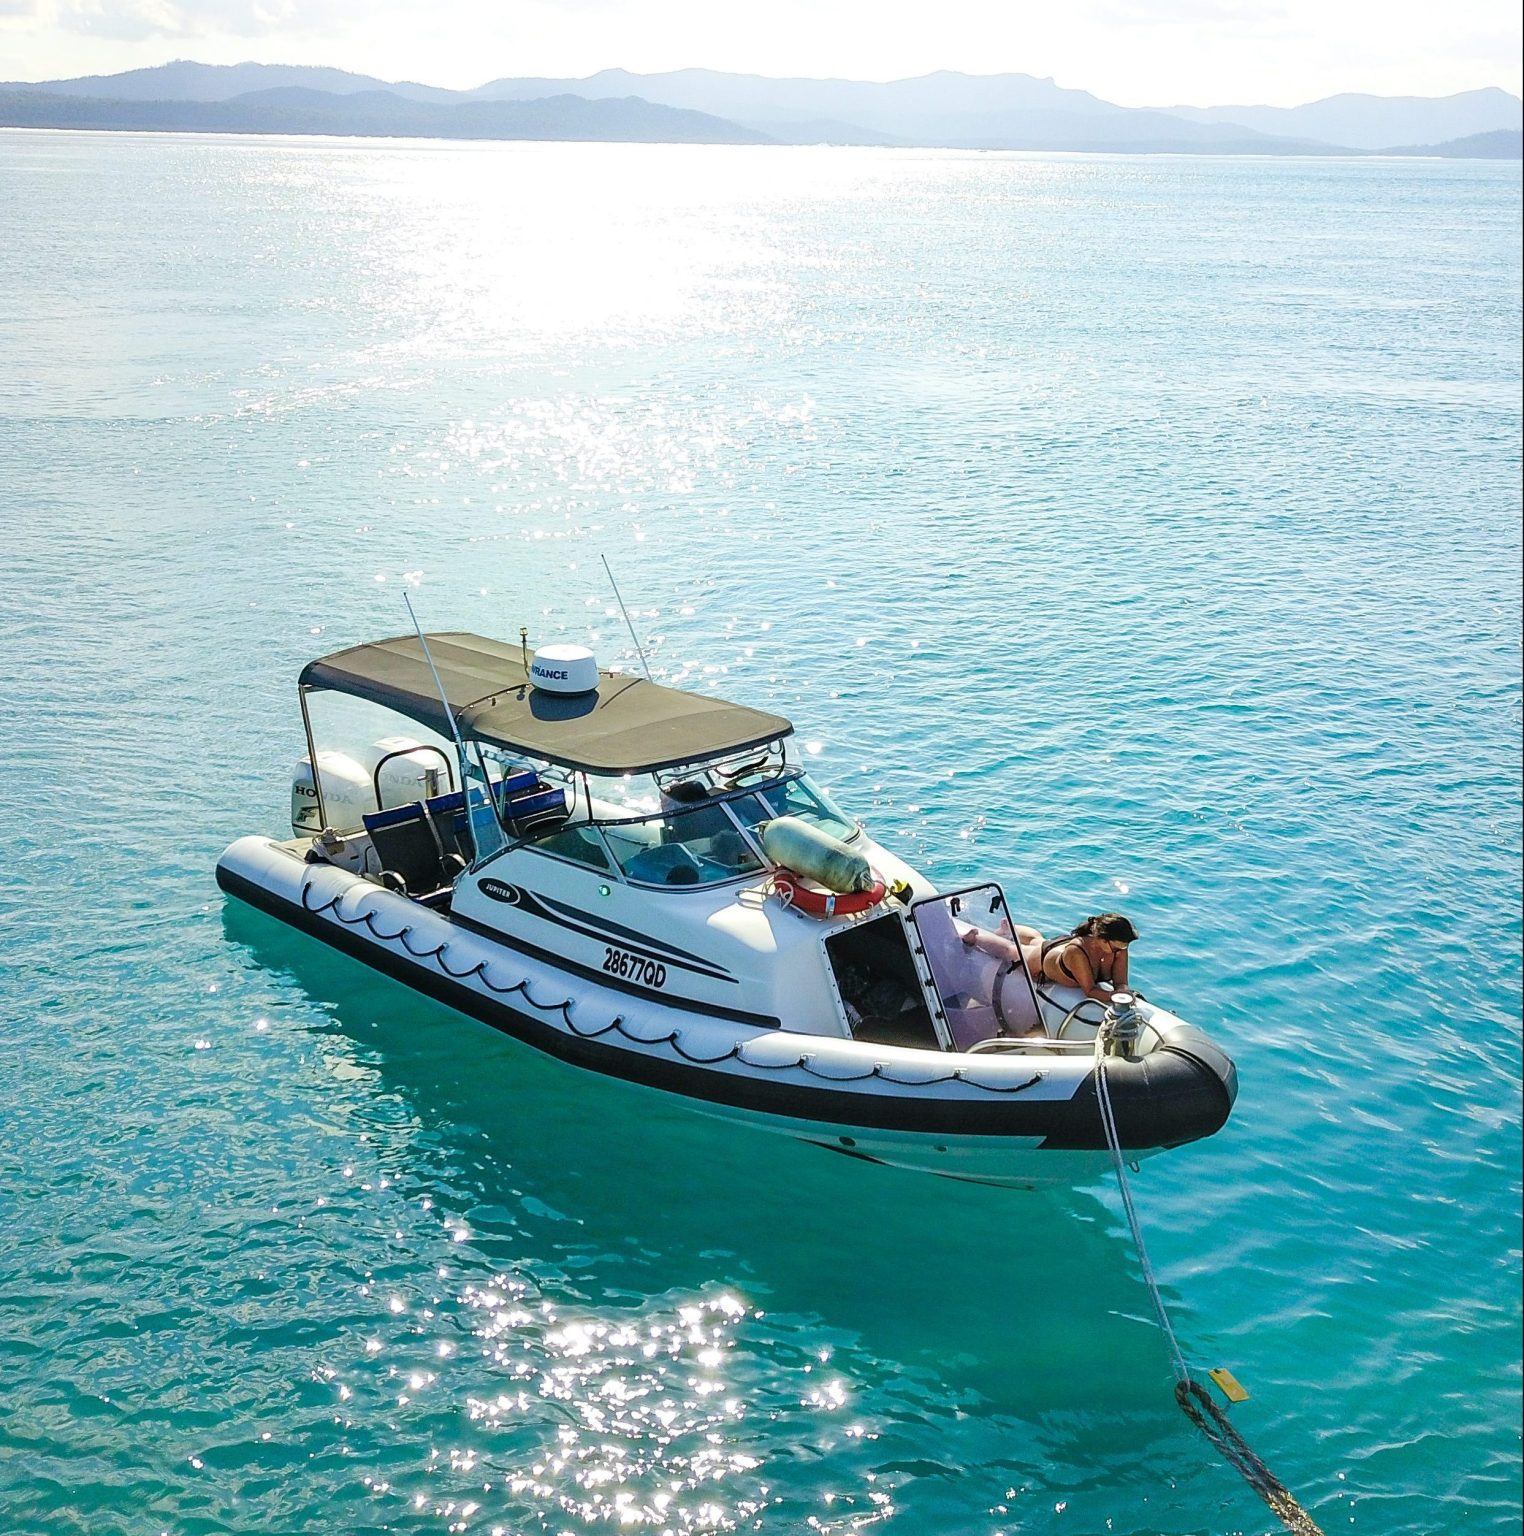 Private Charters Whitsundays, Private Charters Hamilton Island, Private Charters Airlie Beach, Private Day Charter Whitsundays, Private Day Charter Hamilton Island, Private Day Charter Airlie Beach, Freedom Exclusive Charters, Freedom to explore, Whitsundays Private Charters, Private Charters in the Whitsundays